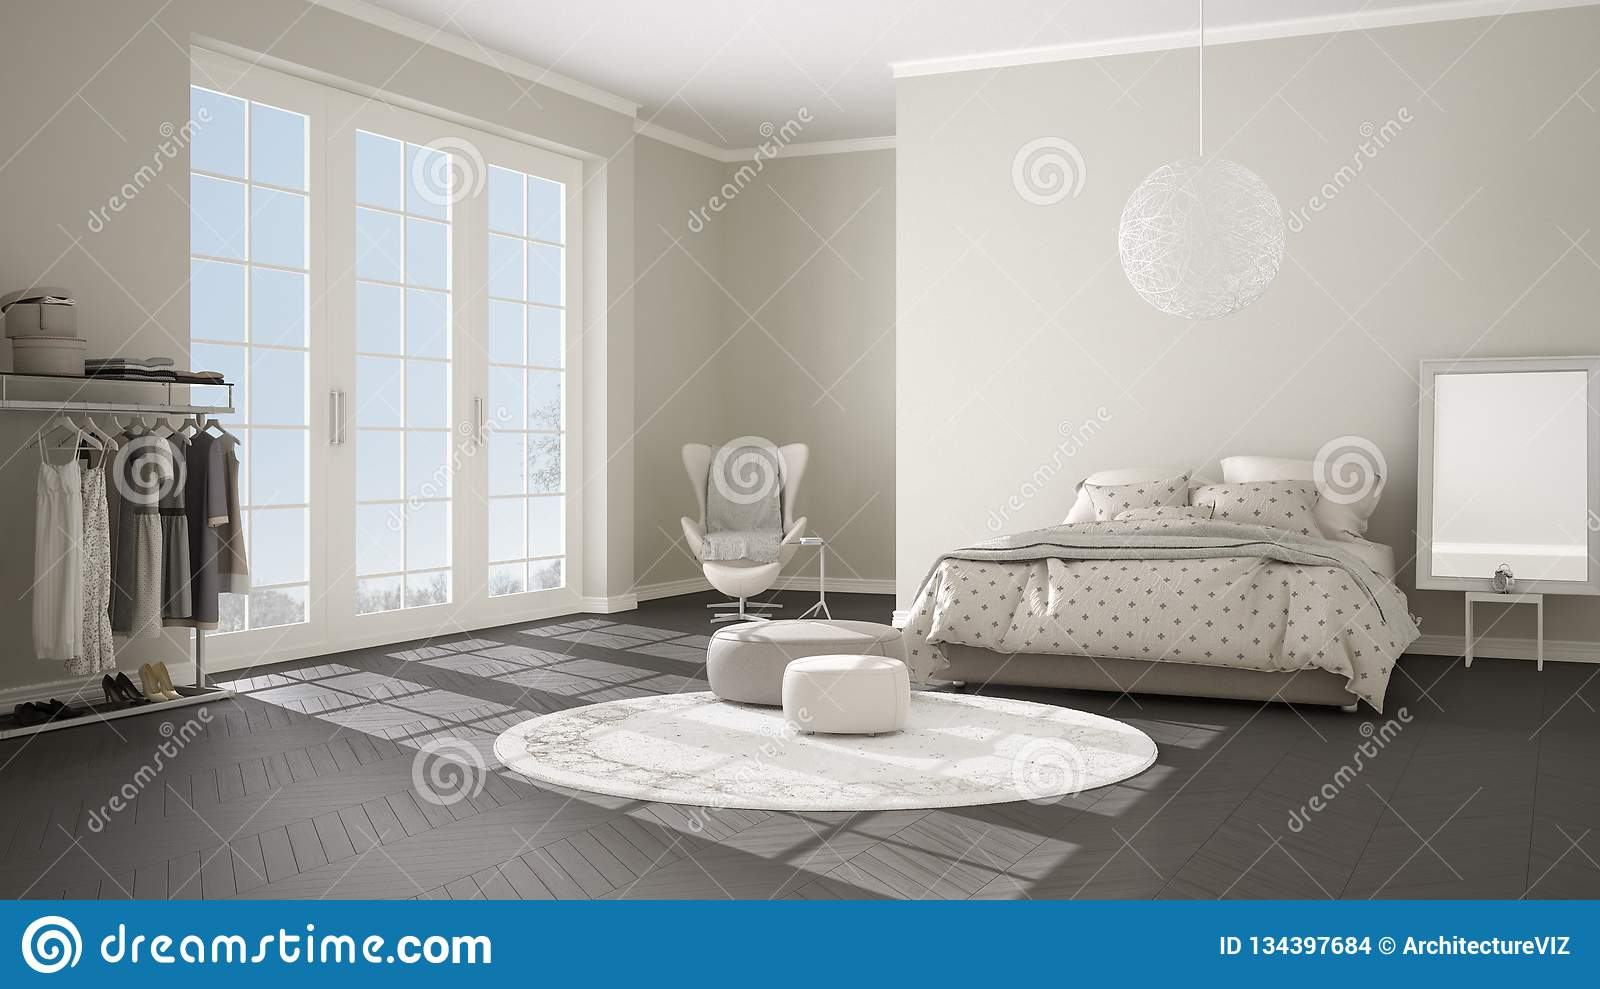 Comfortable modern gray and beige bedroom with wooden parquet floor, panoramic window on winter landscape, carpet, armchair and